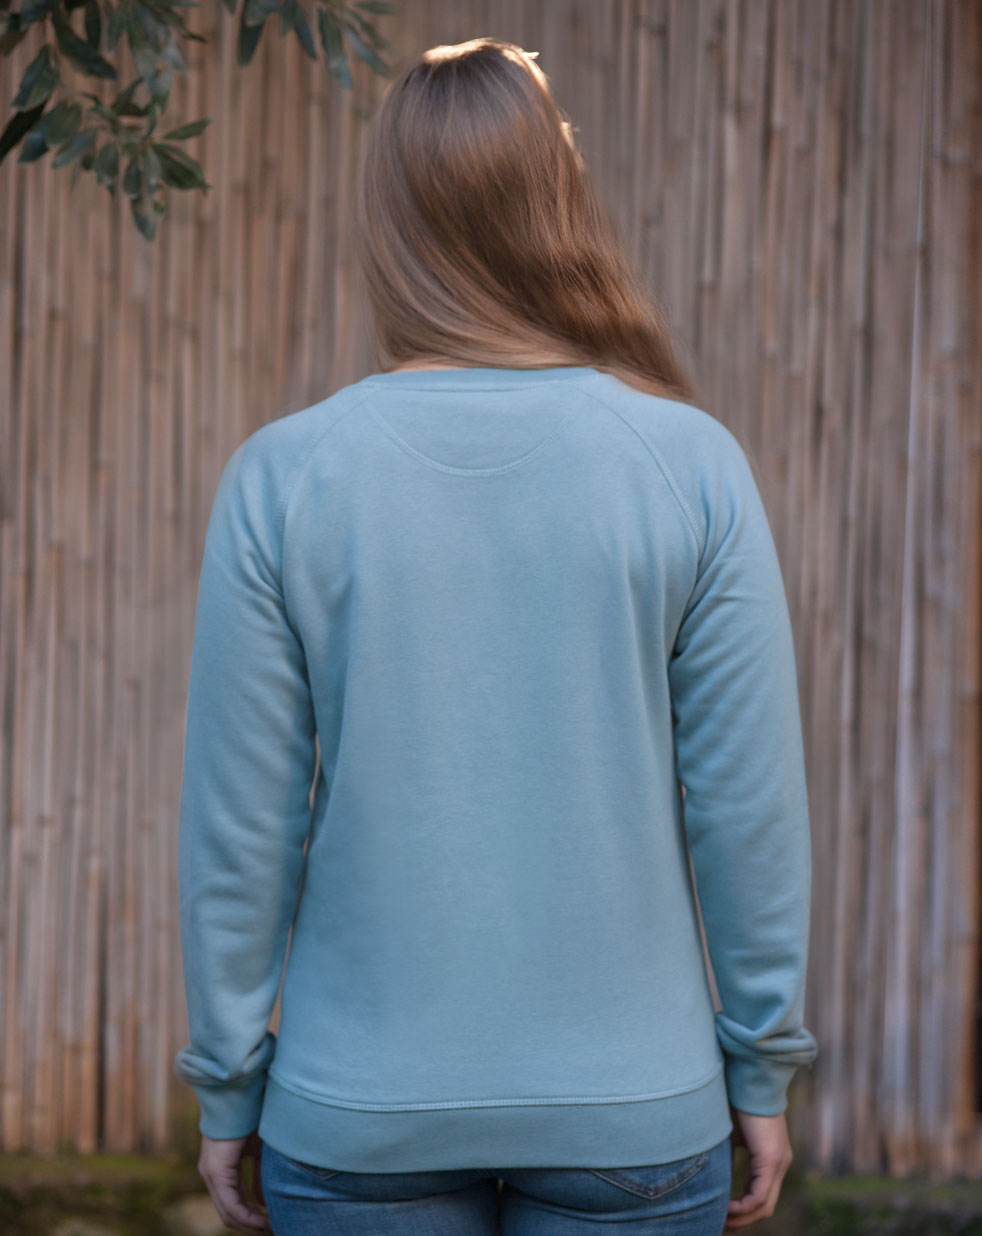 Women's sweatshirt | green teal